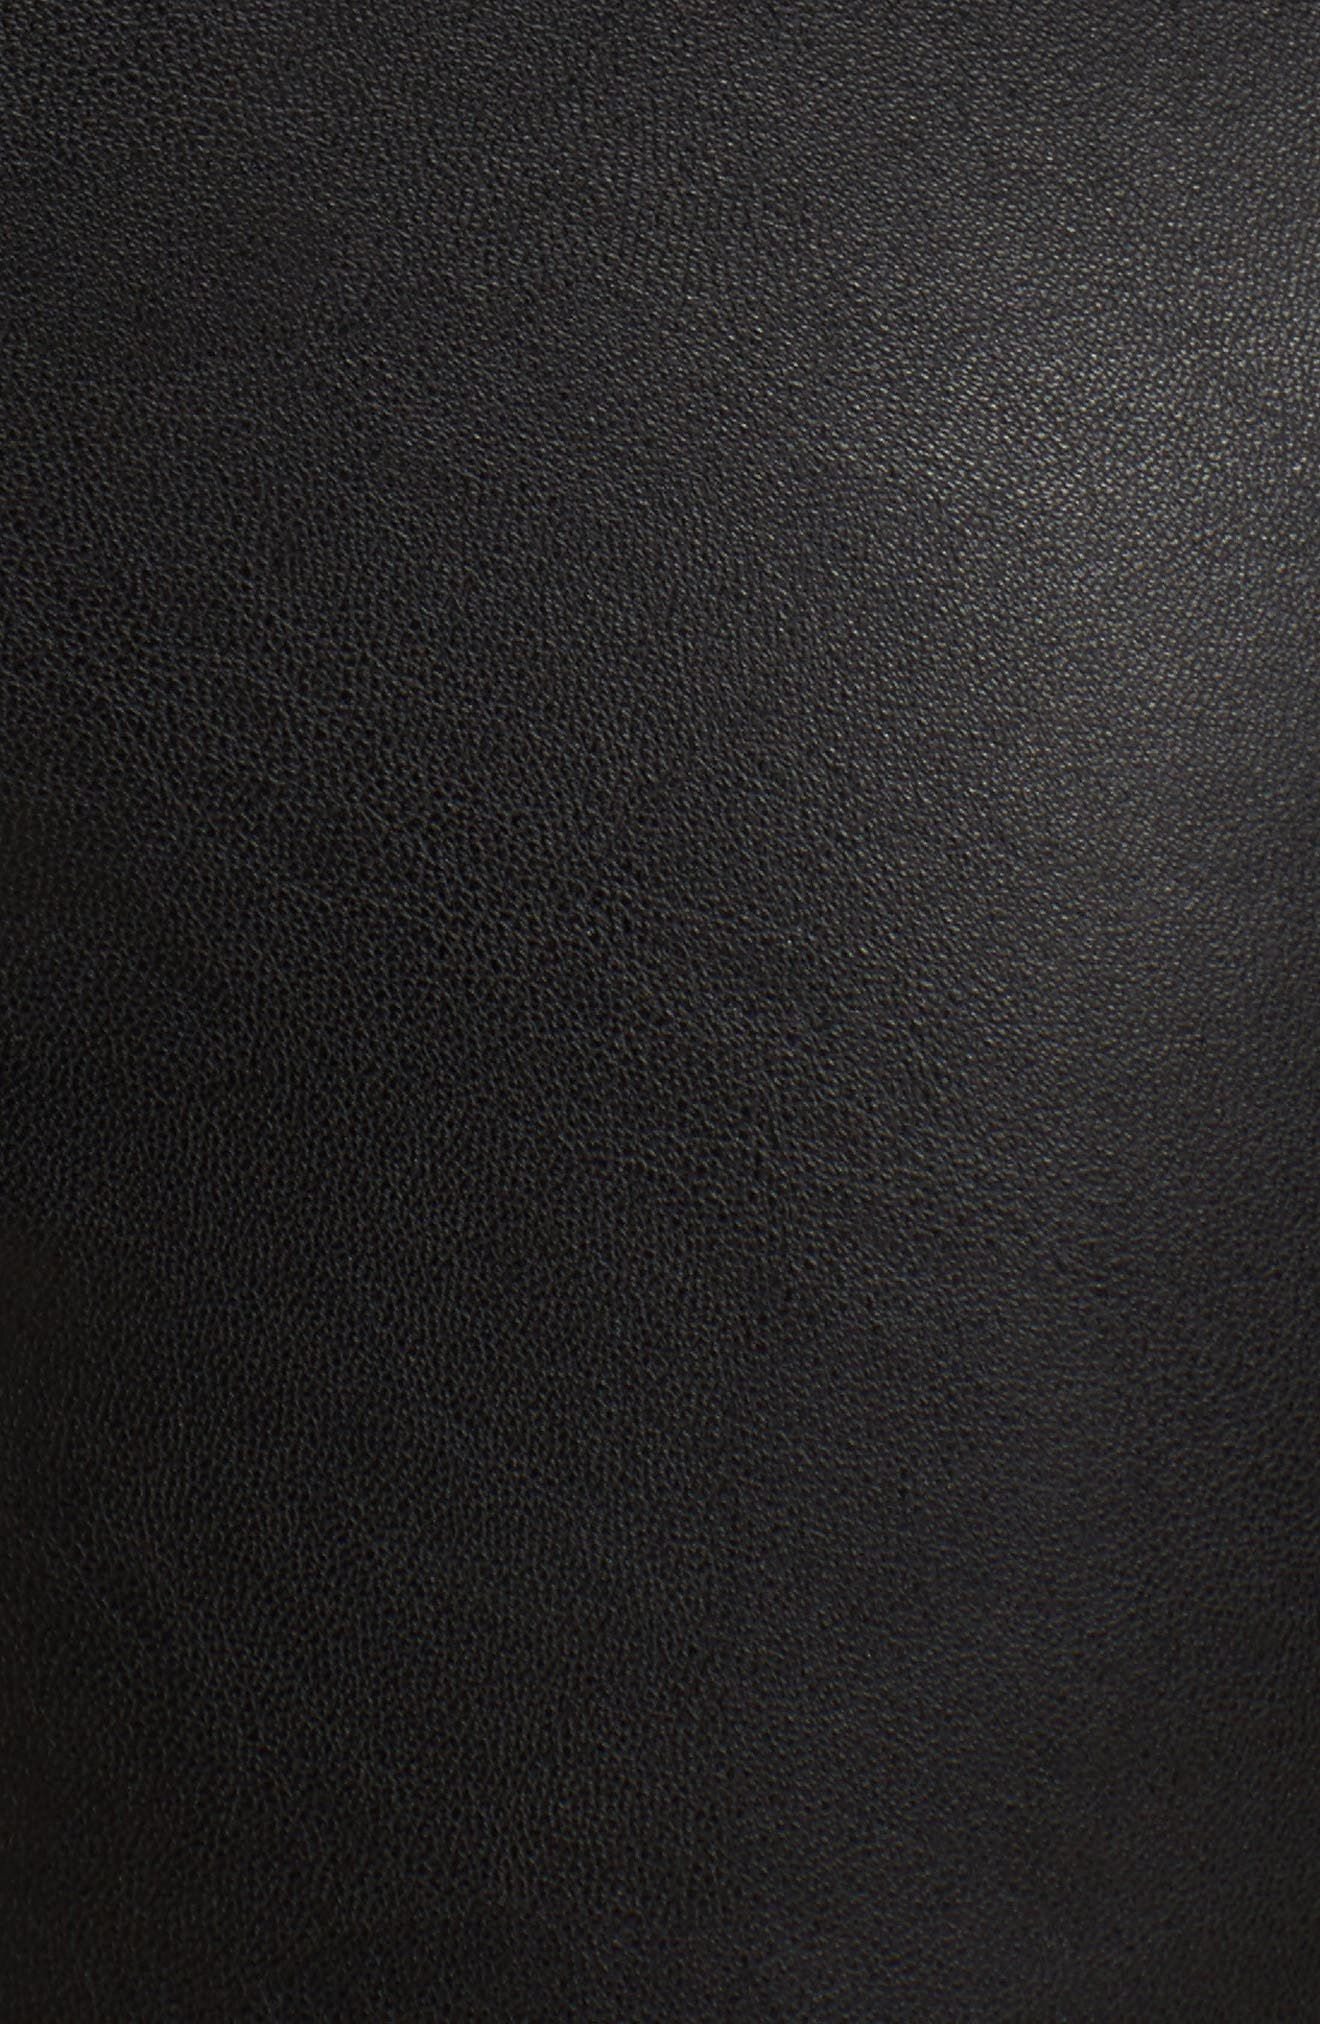 Leatherette Leggings,                             Alternate thumbnail 5, color,                             001